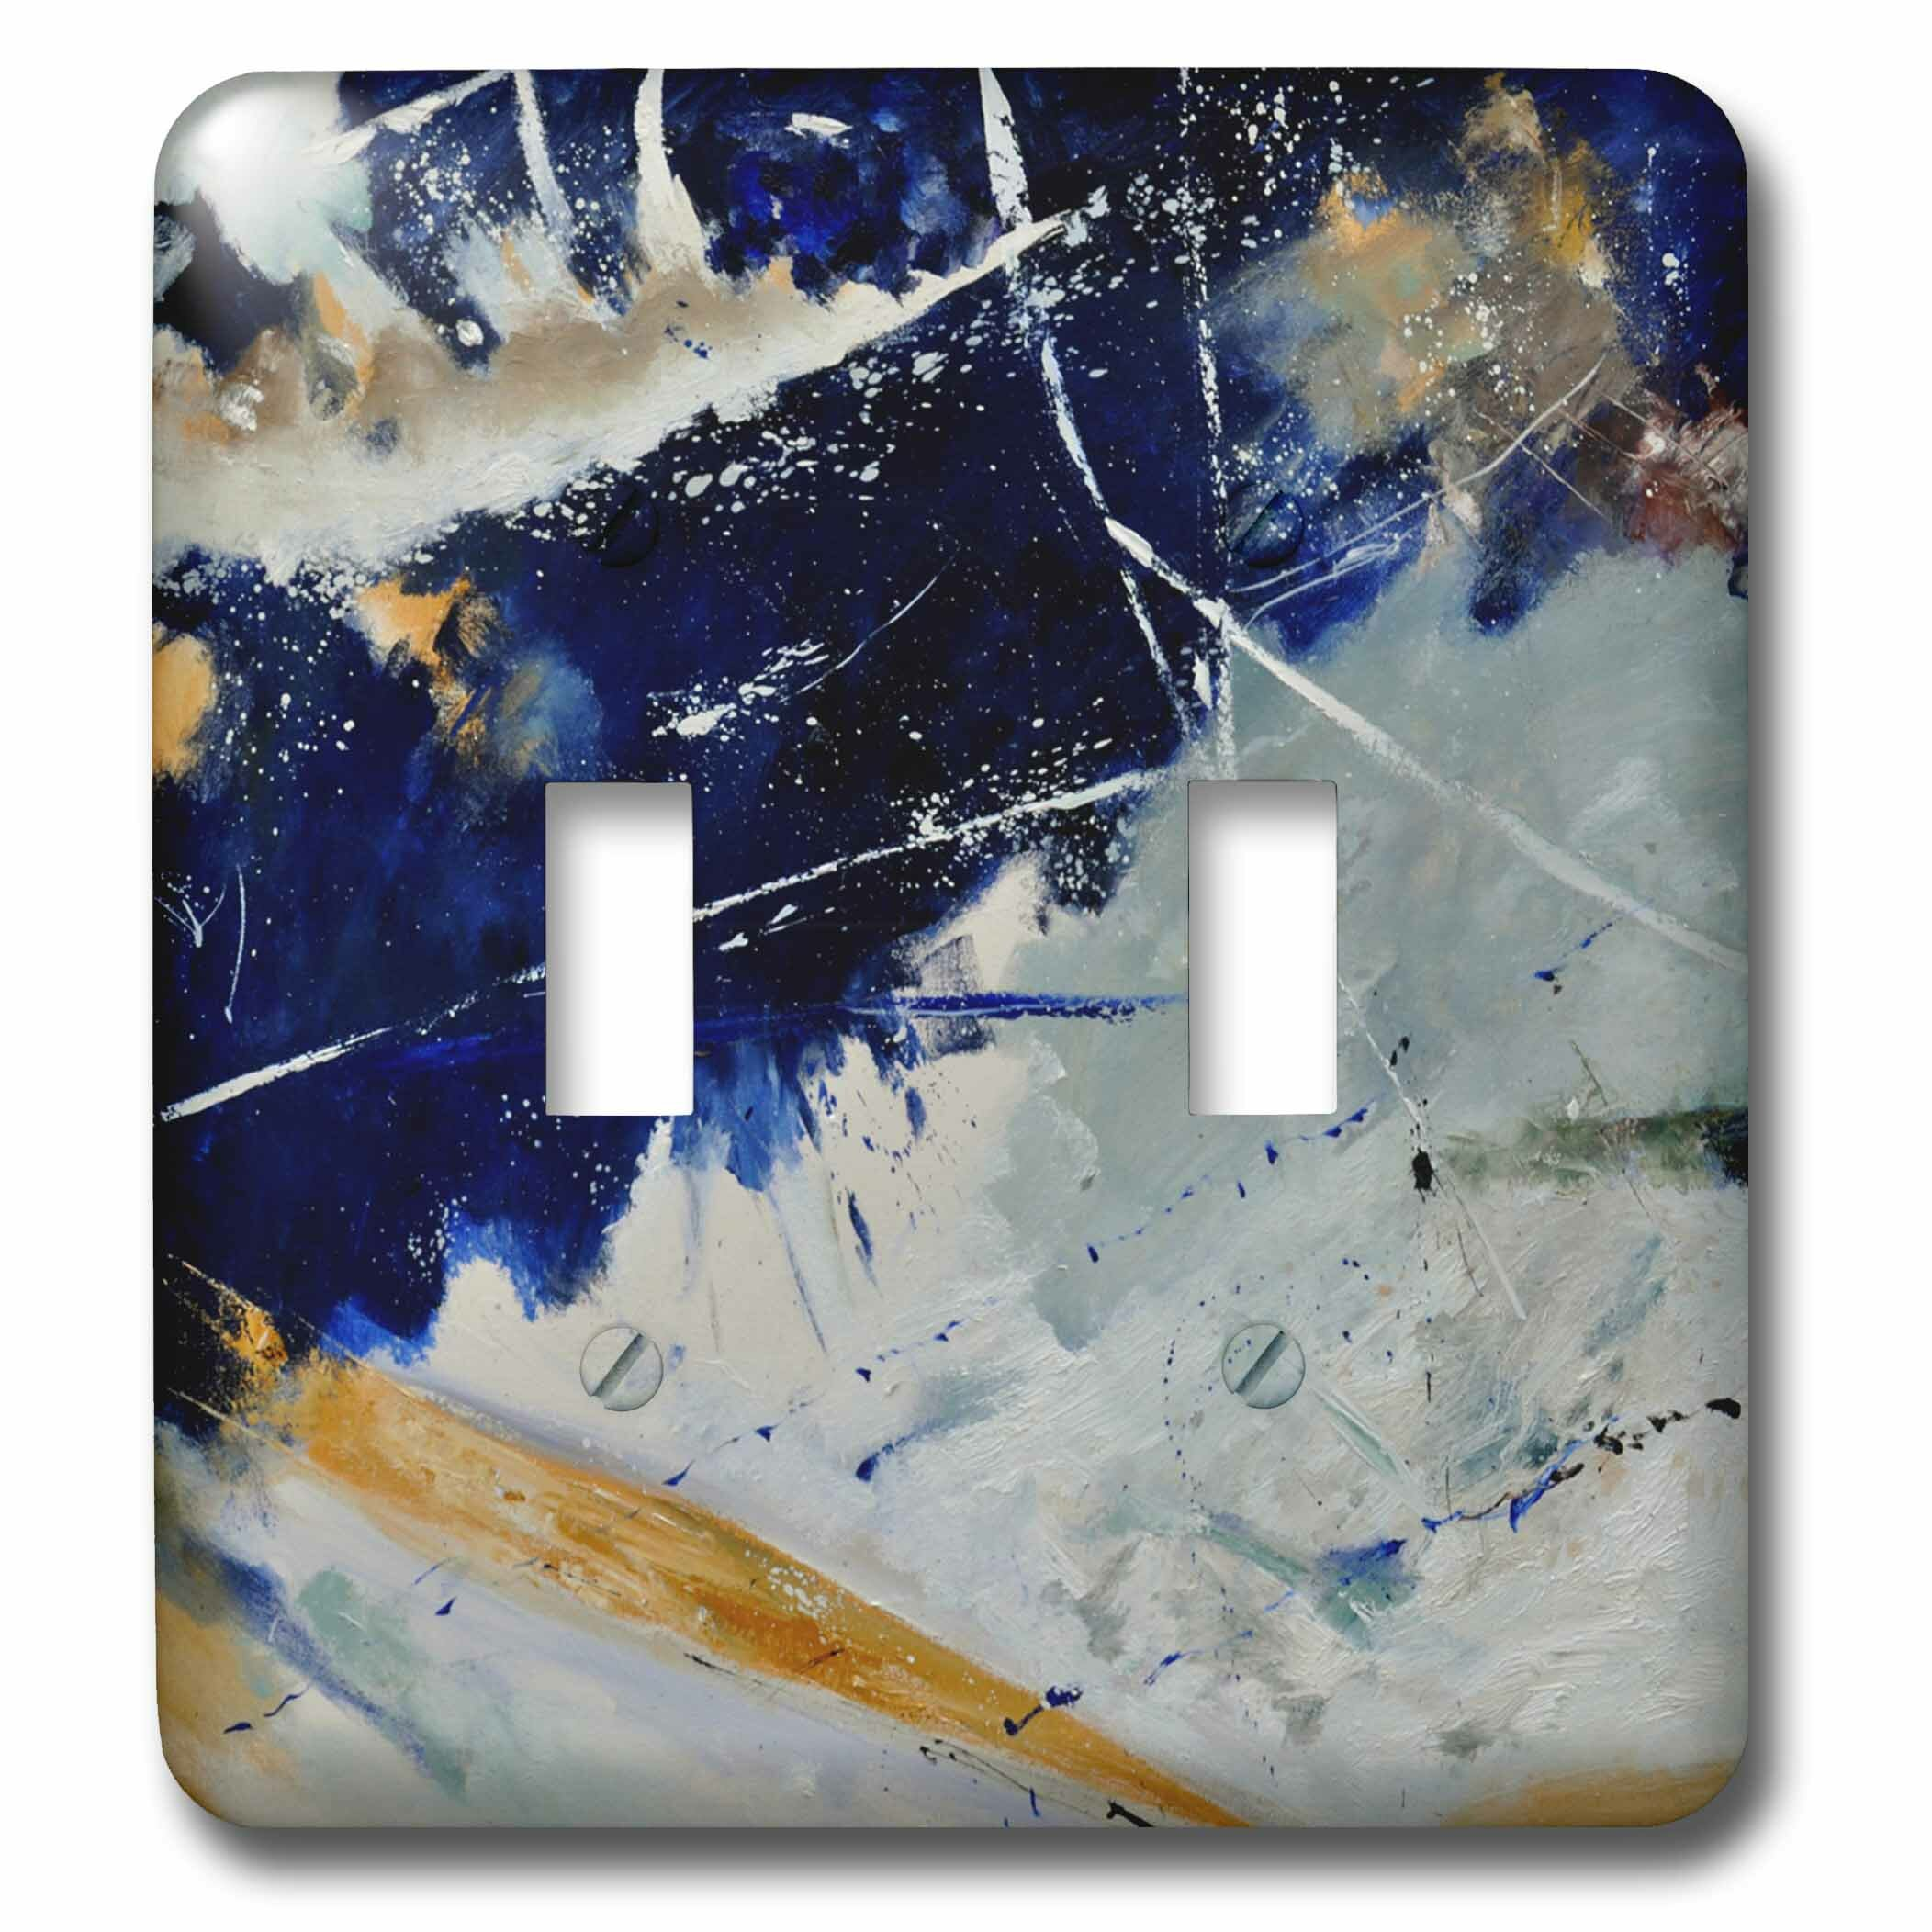 3drose Different Wave Abstract 2 Gang Toggle Light Switch Wall Plate Wayfair